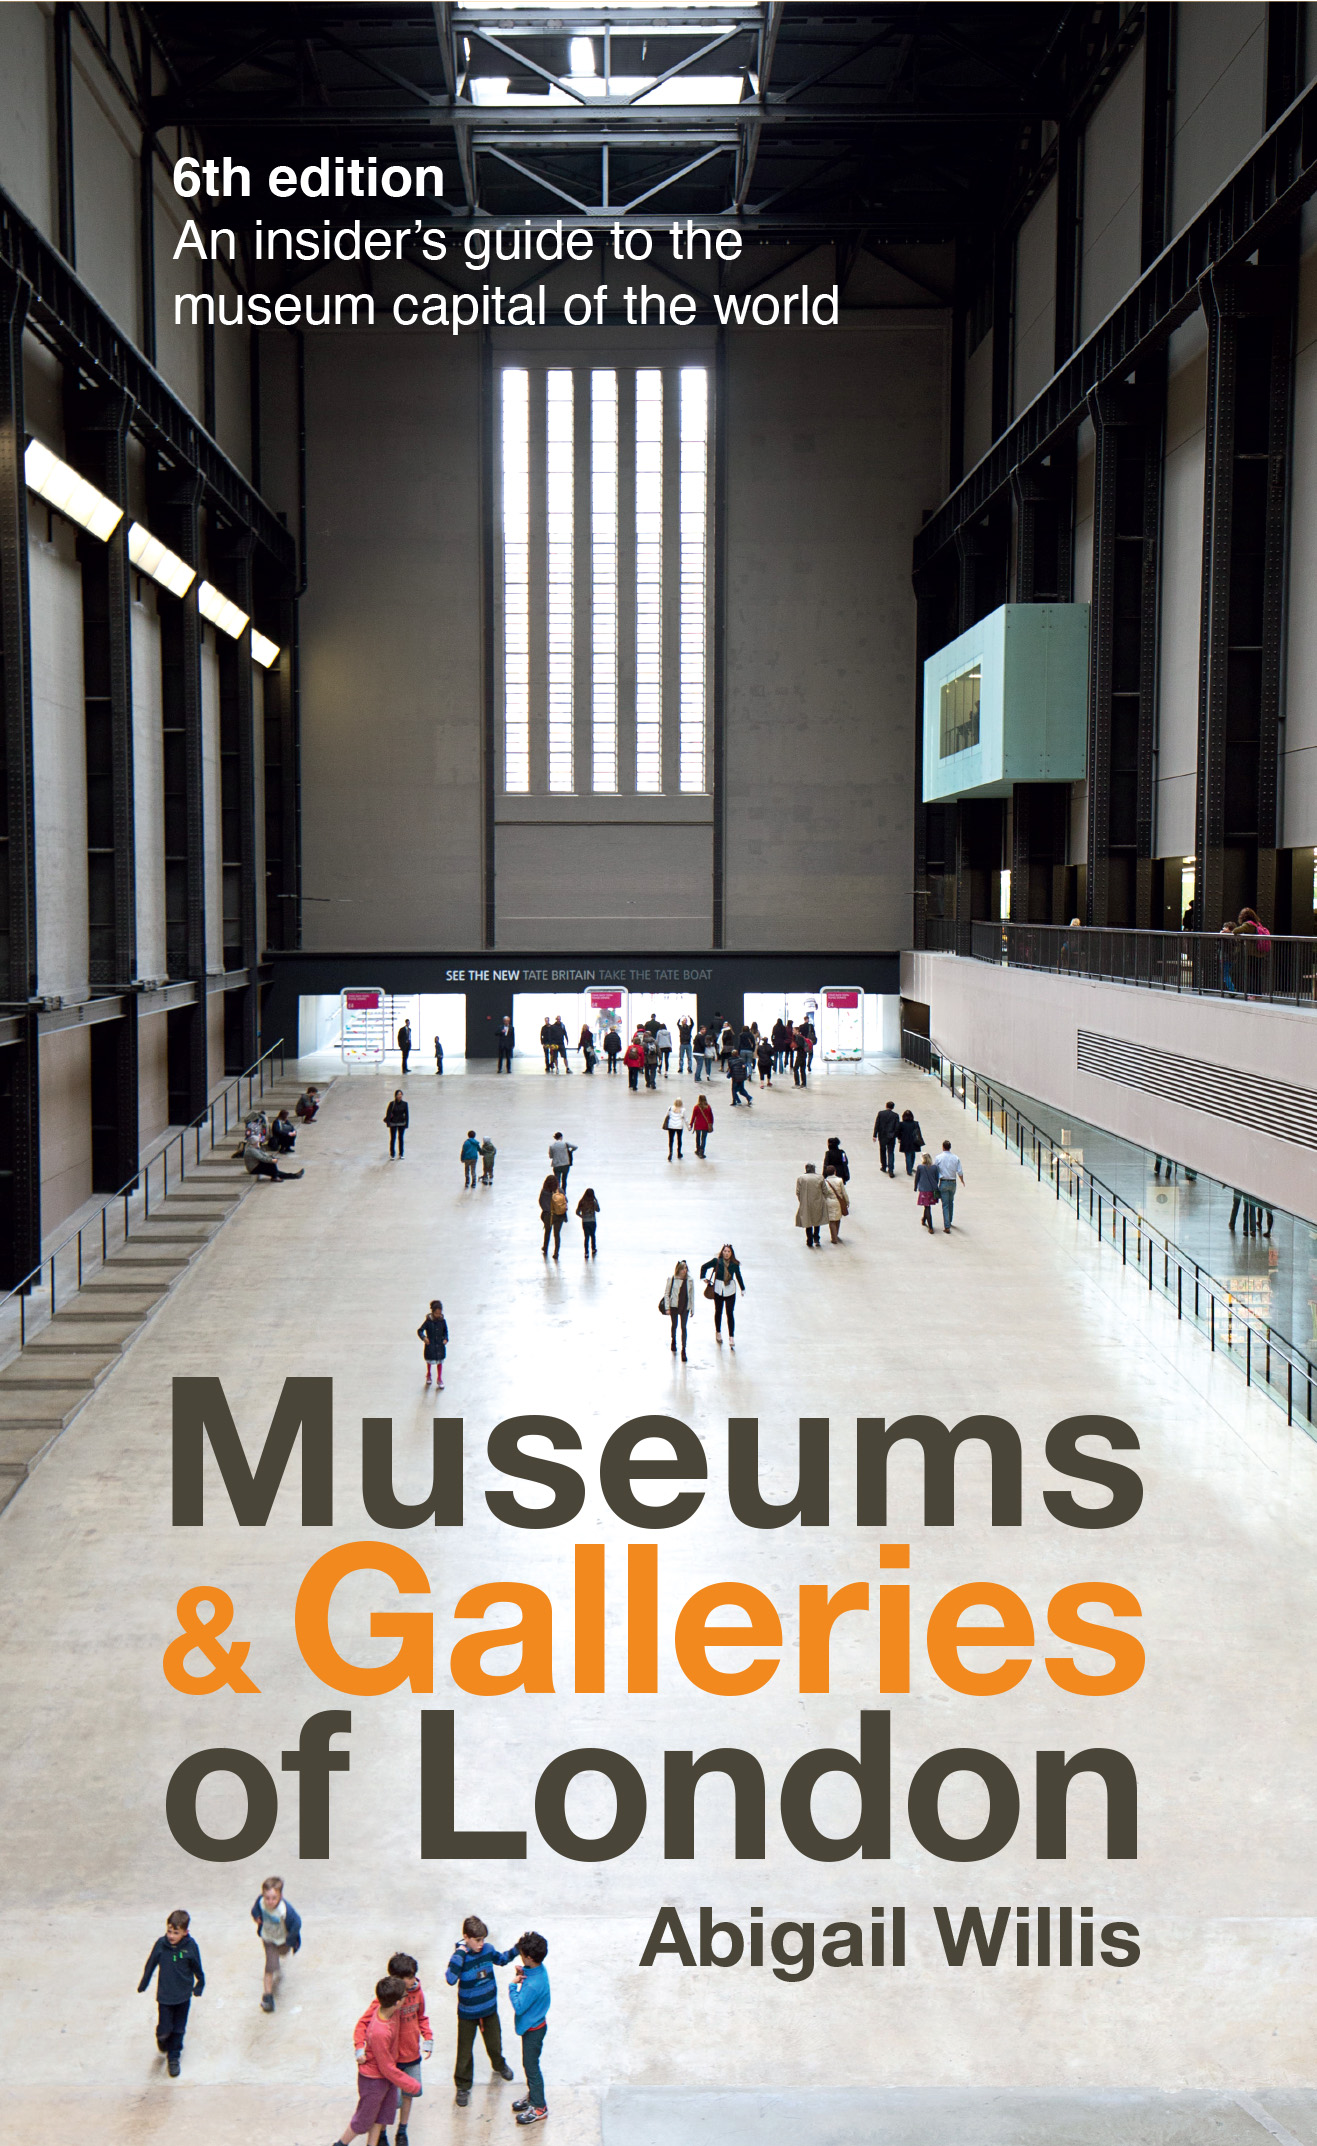 Museums & Galleries of London-Abigail Willis-6th edition